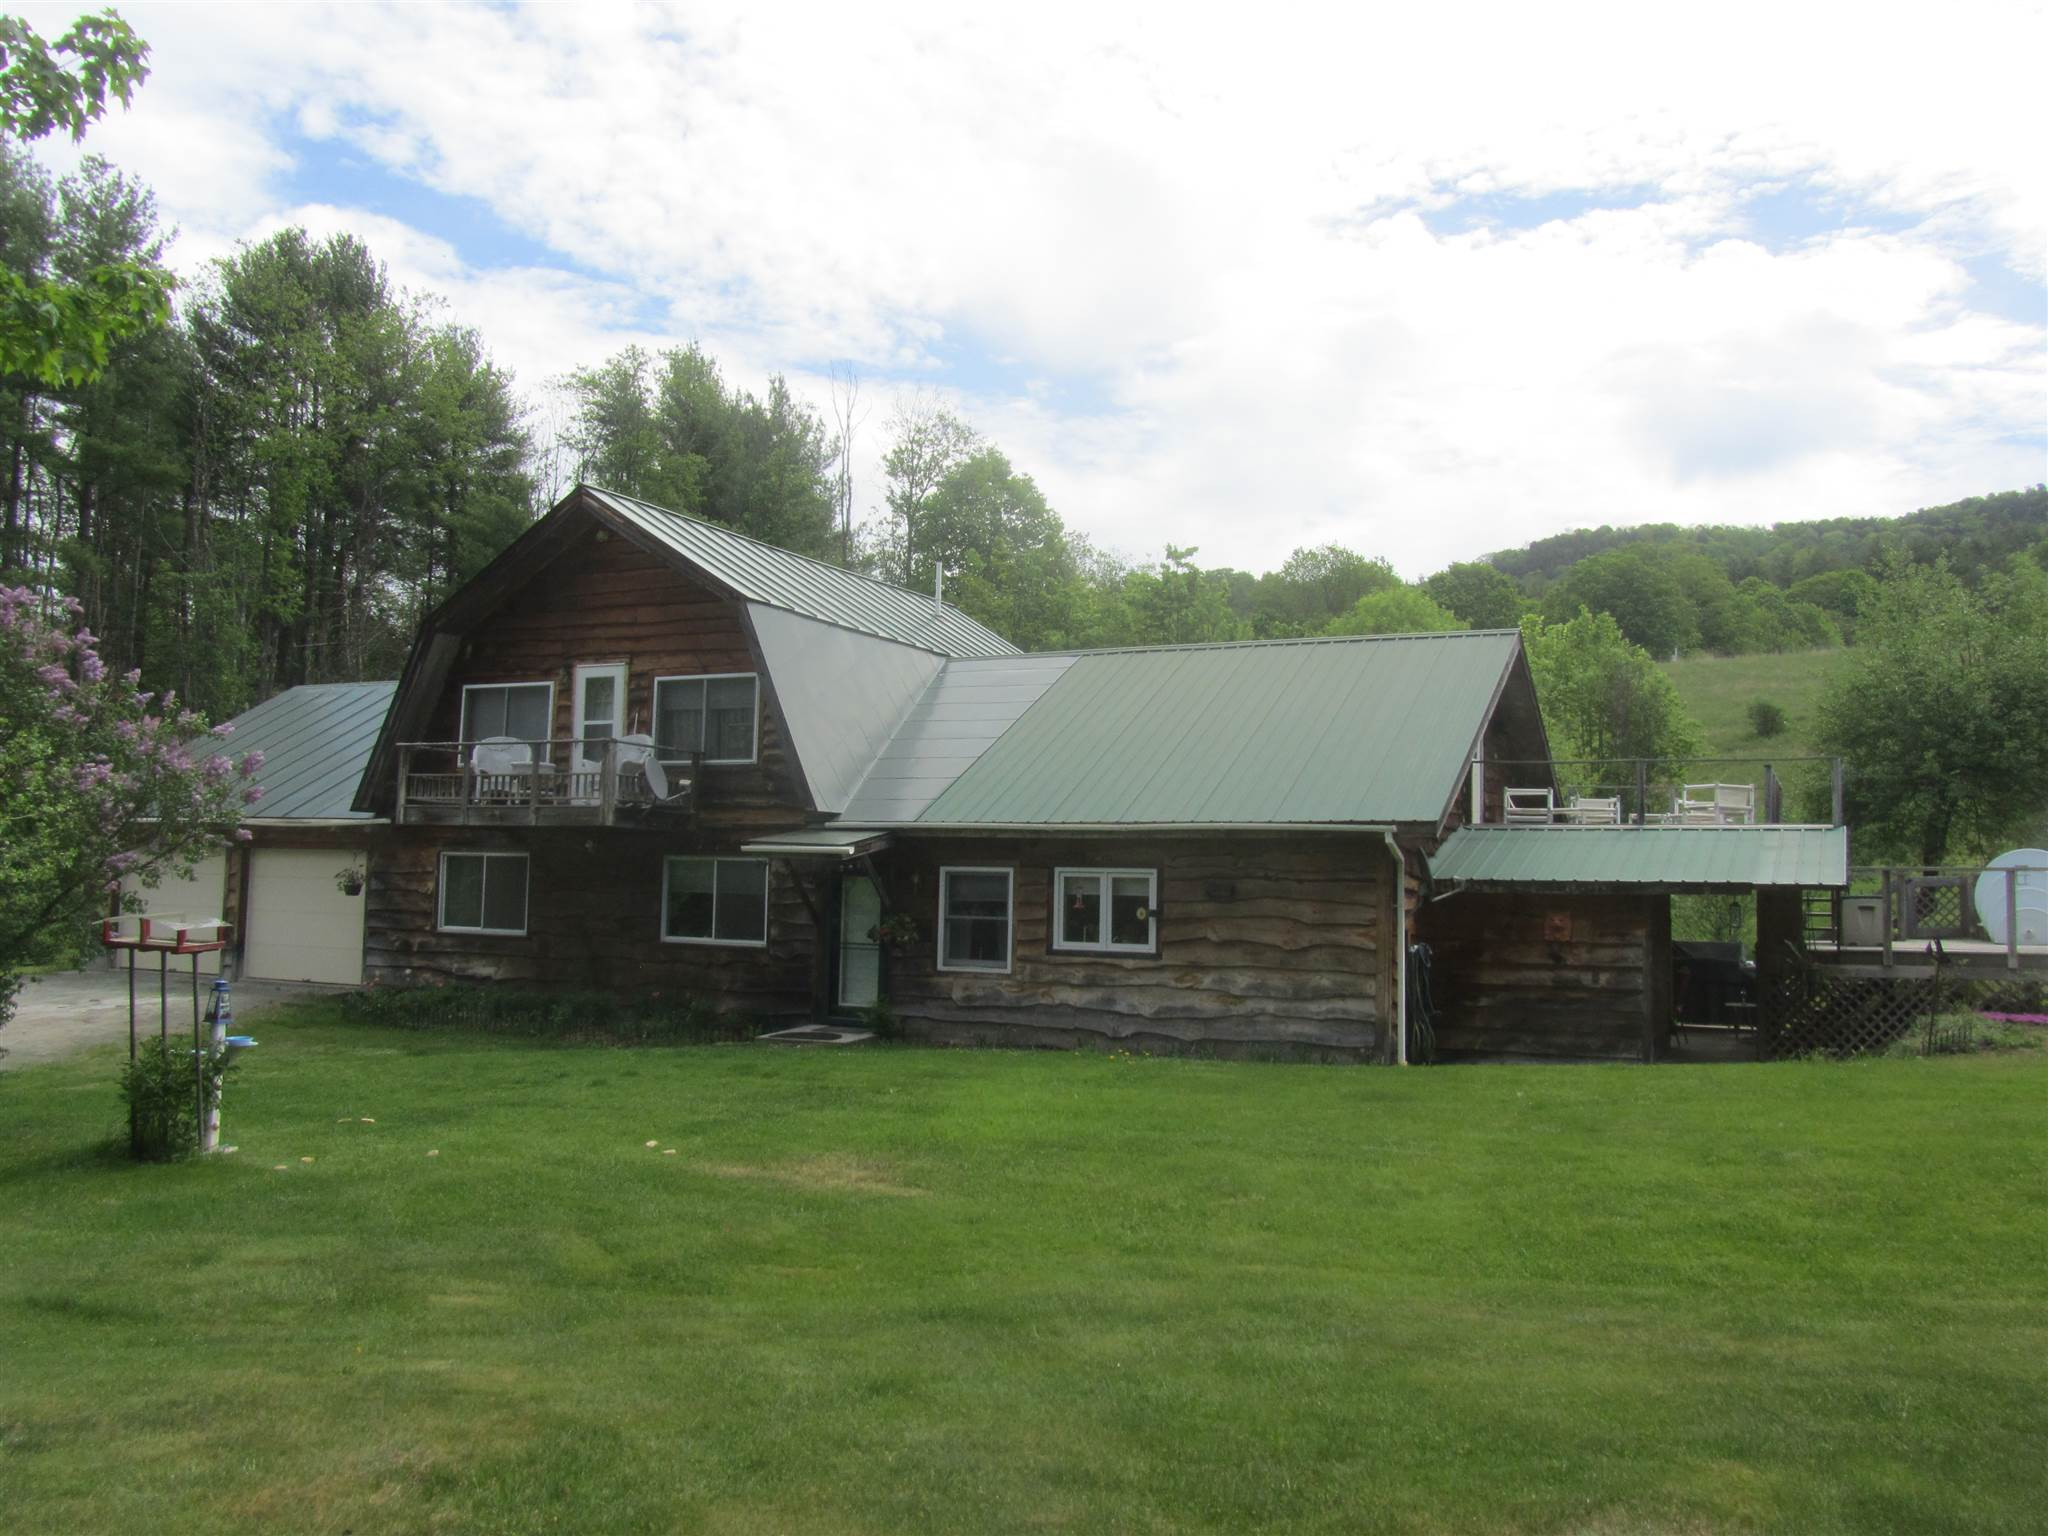 ROYALTON VT Homes for sale